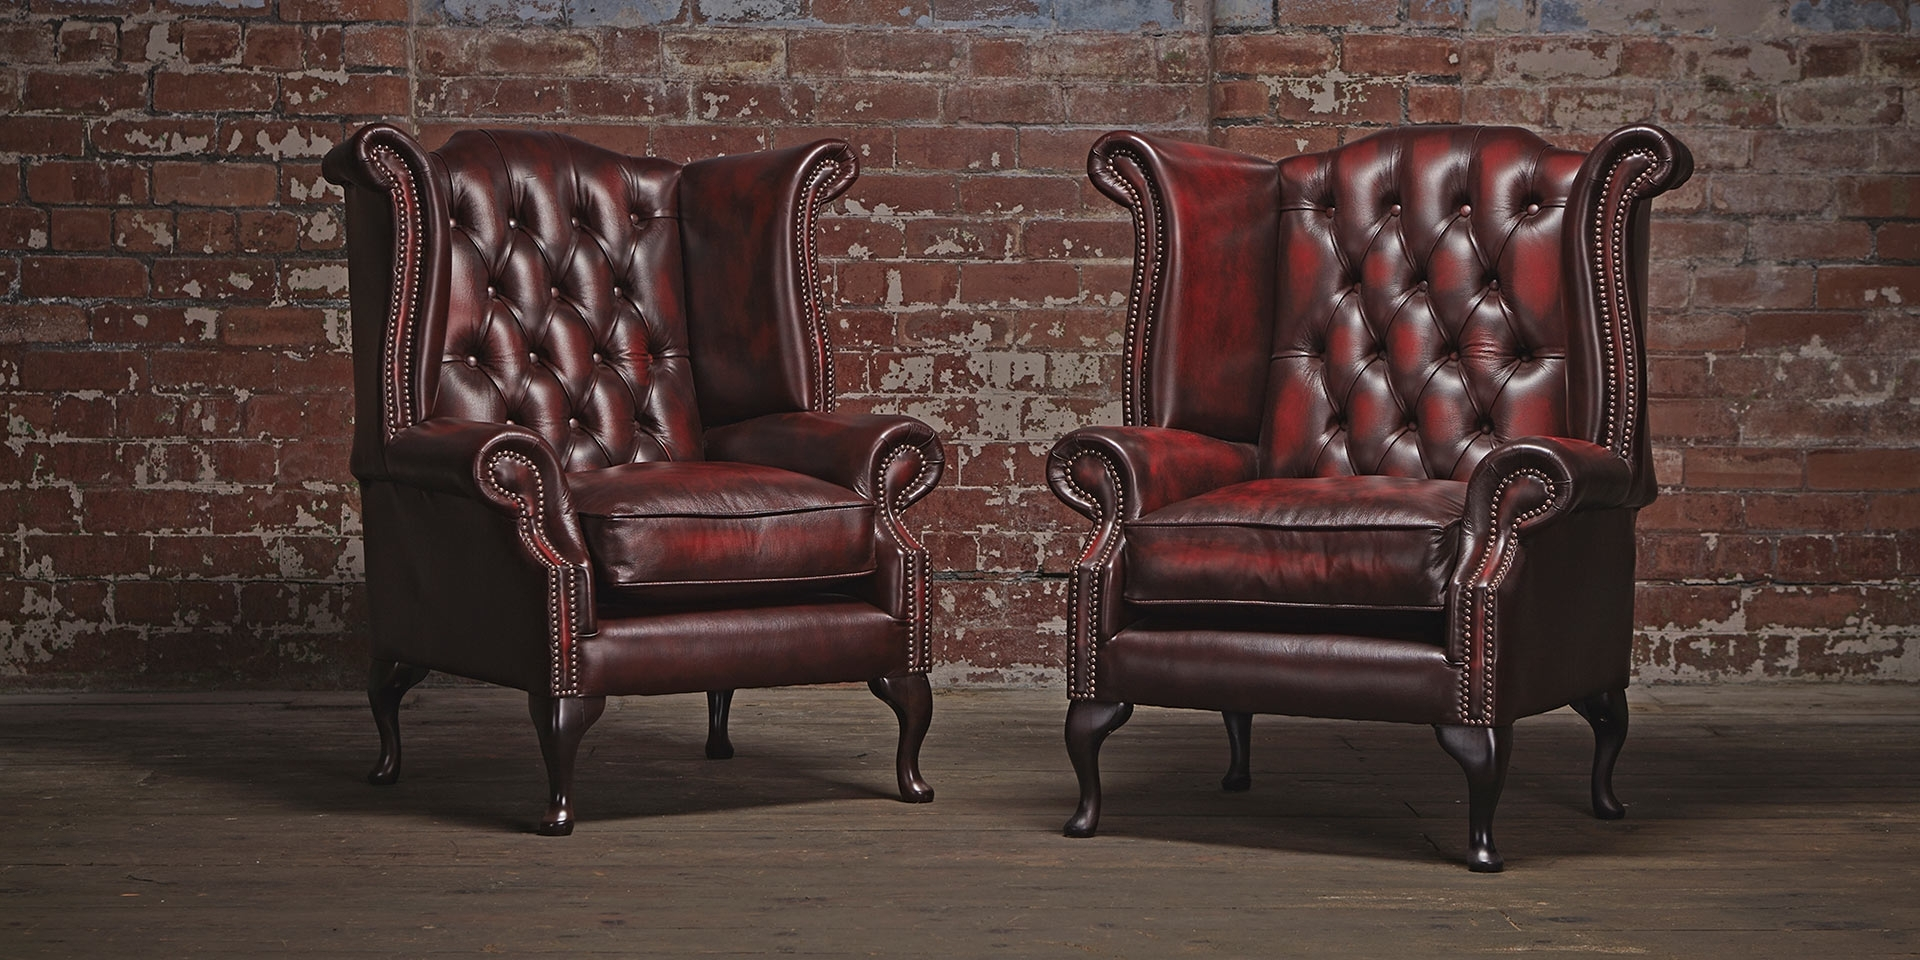 Chesterfield Sofas And Chairs Throughout Latest Velvet Chesterfield Sofa Brown Leather Chesterfield Sofa (View 8 of 20)